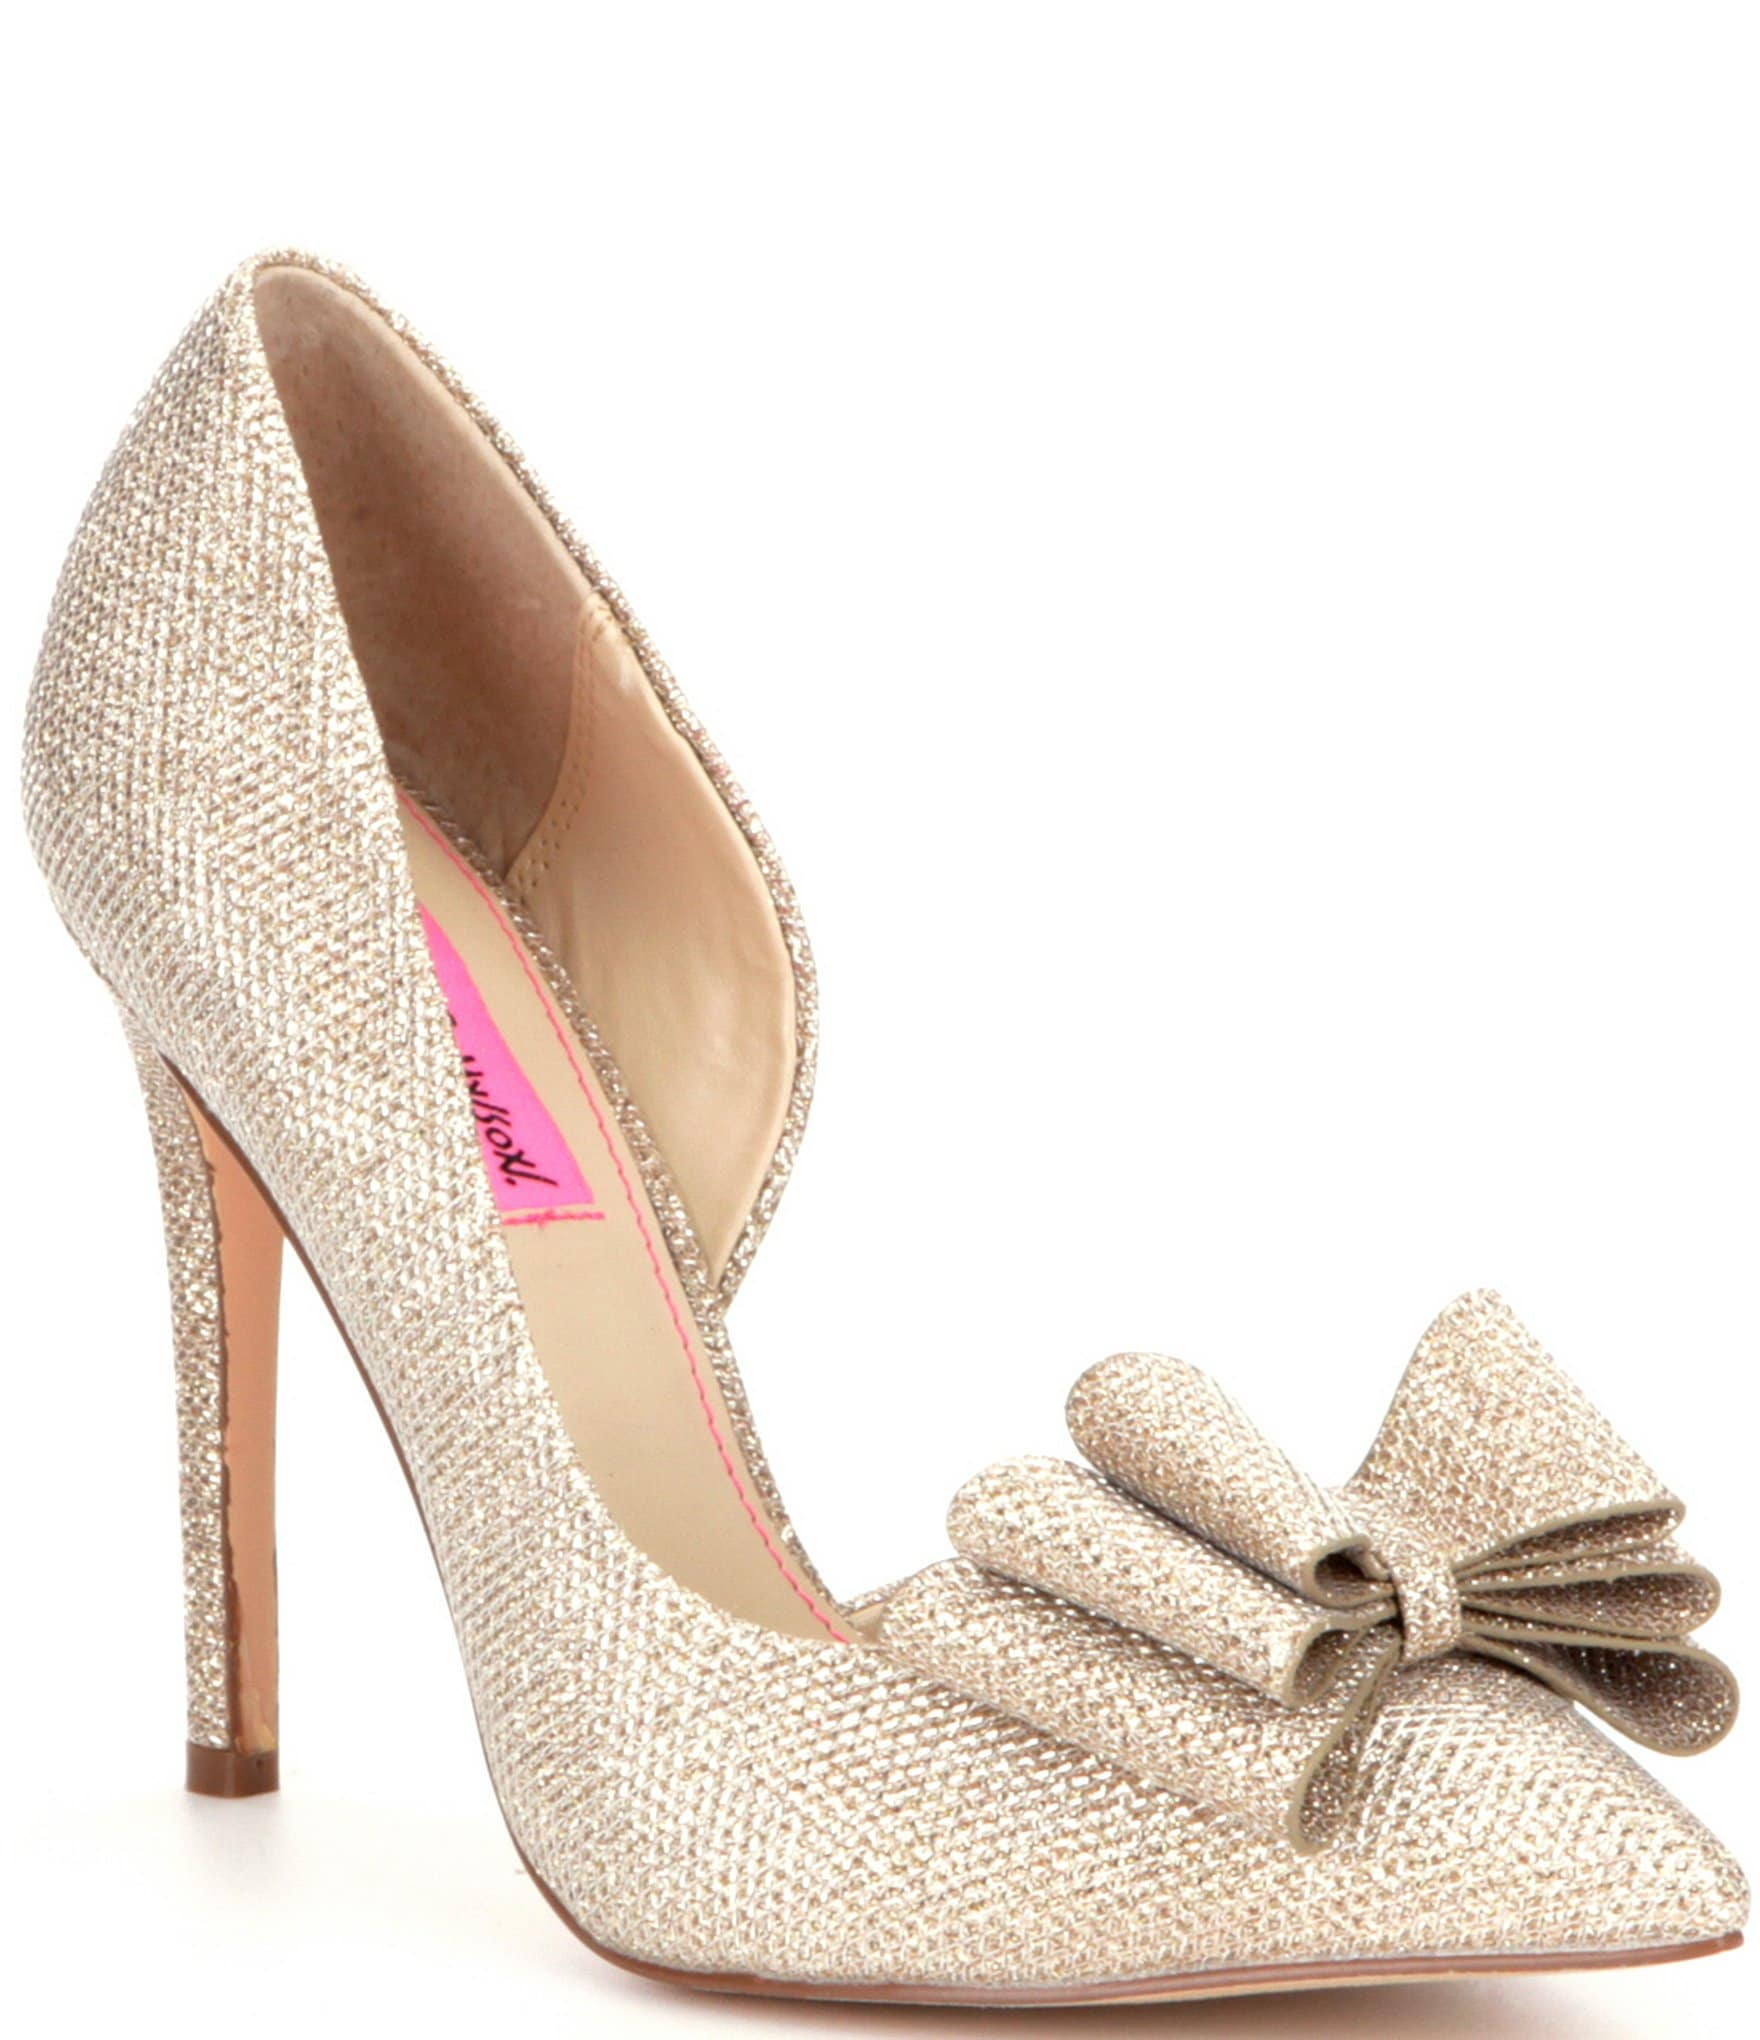 Blush Colored Shoes For Sale